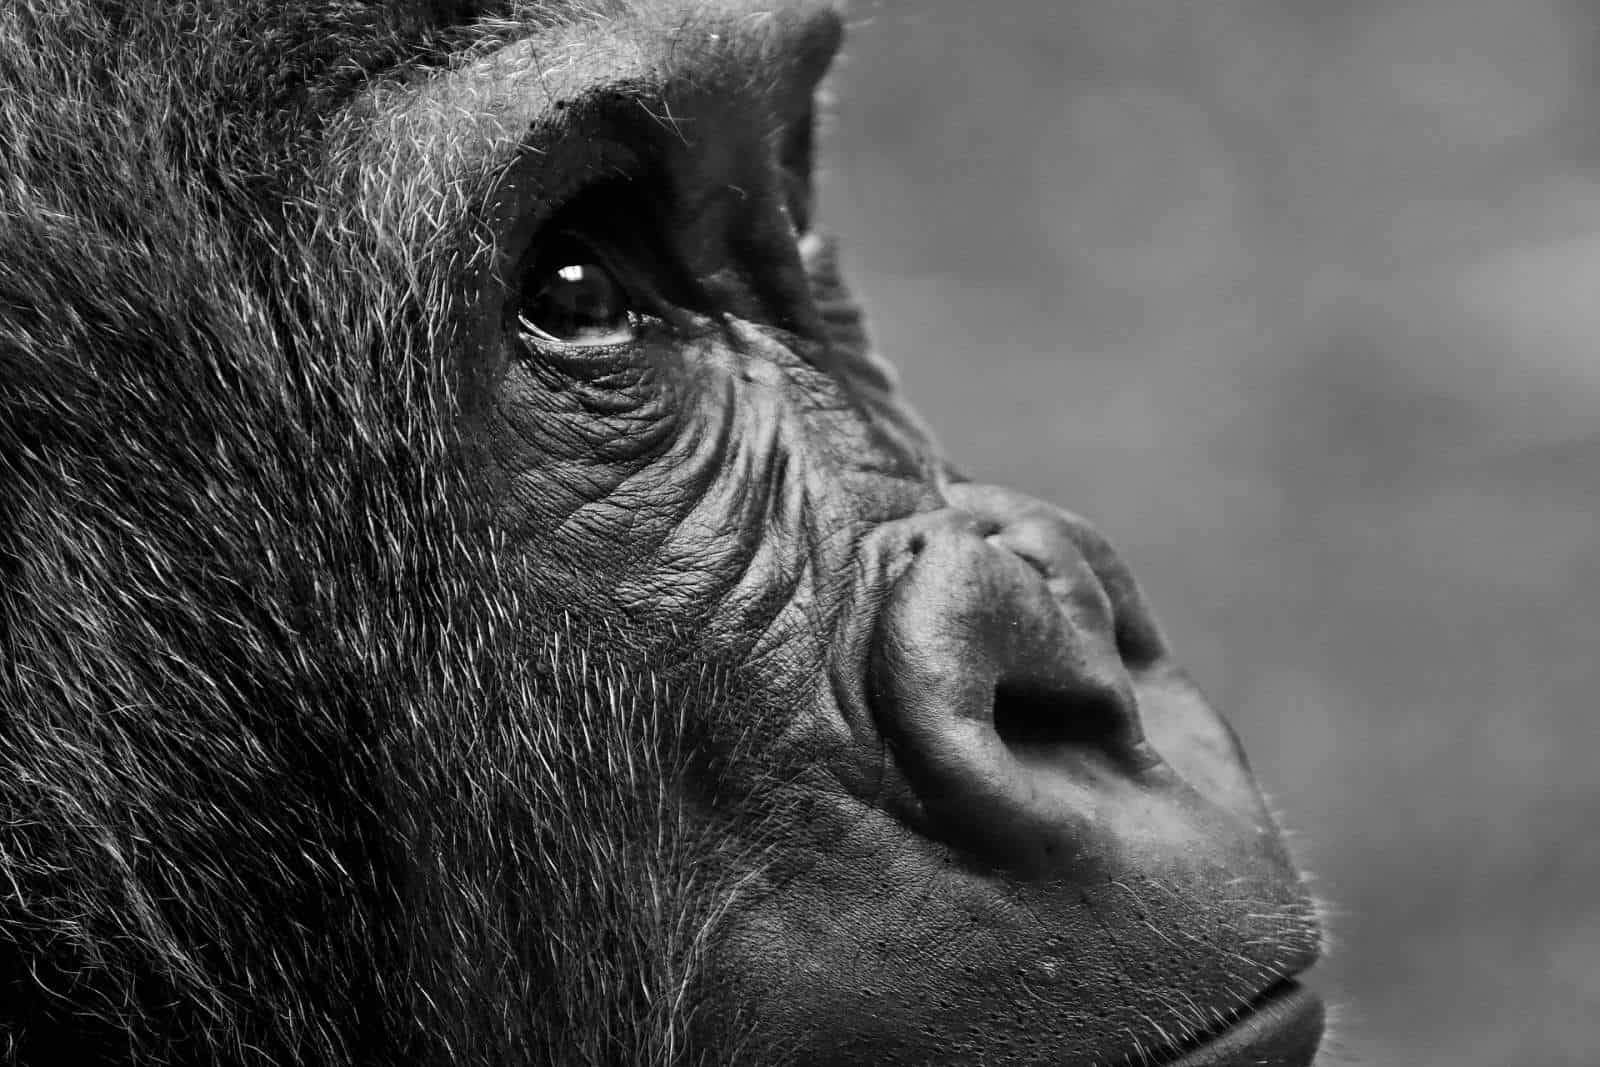 Climate change aided decline of endangered Cross River gorilla